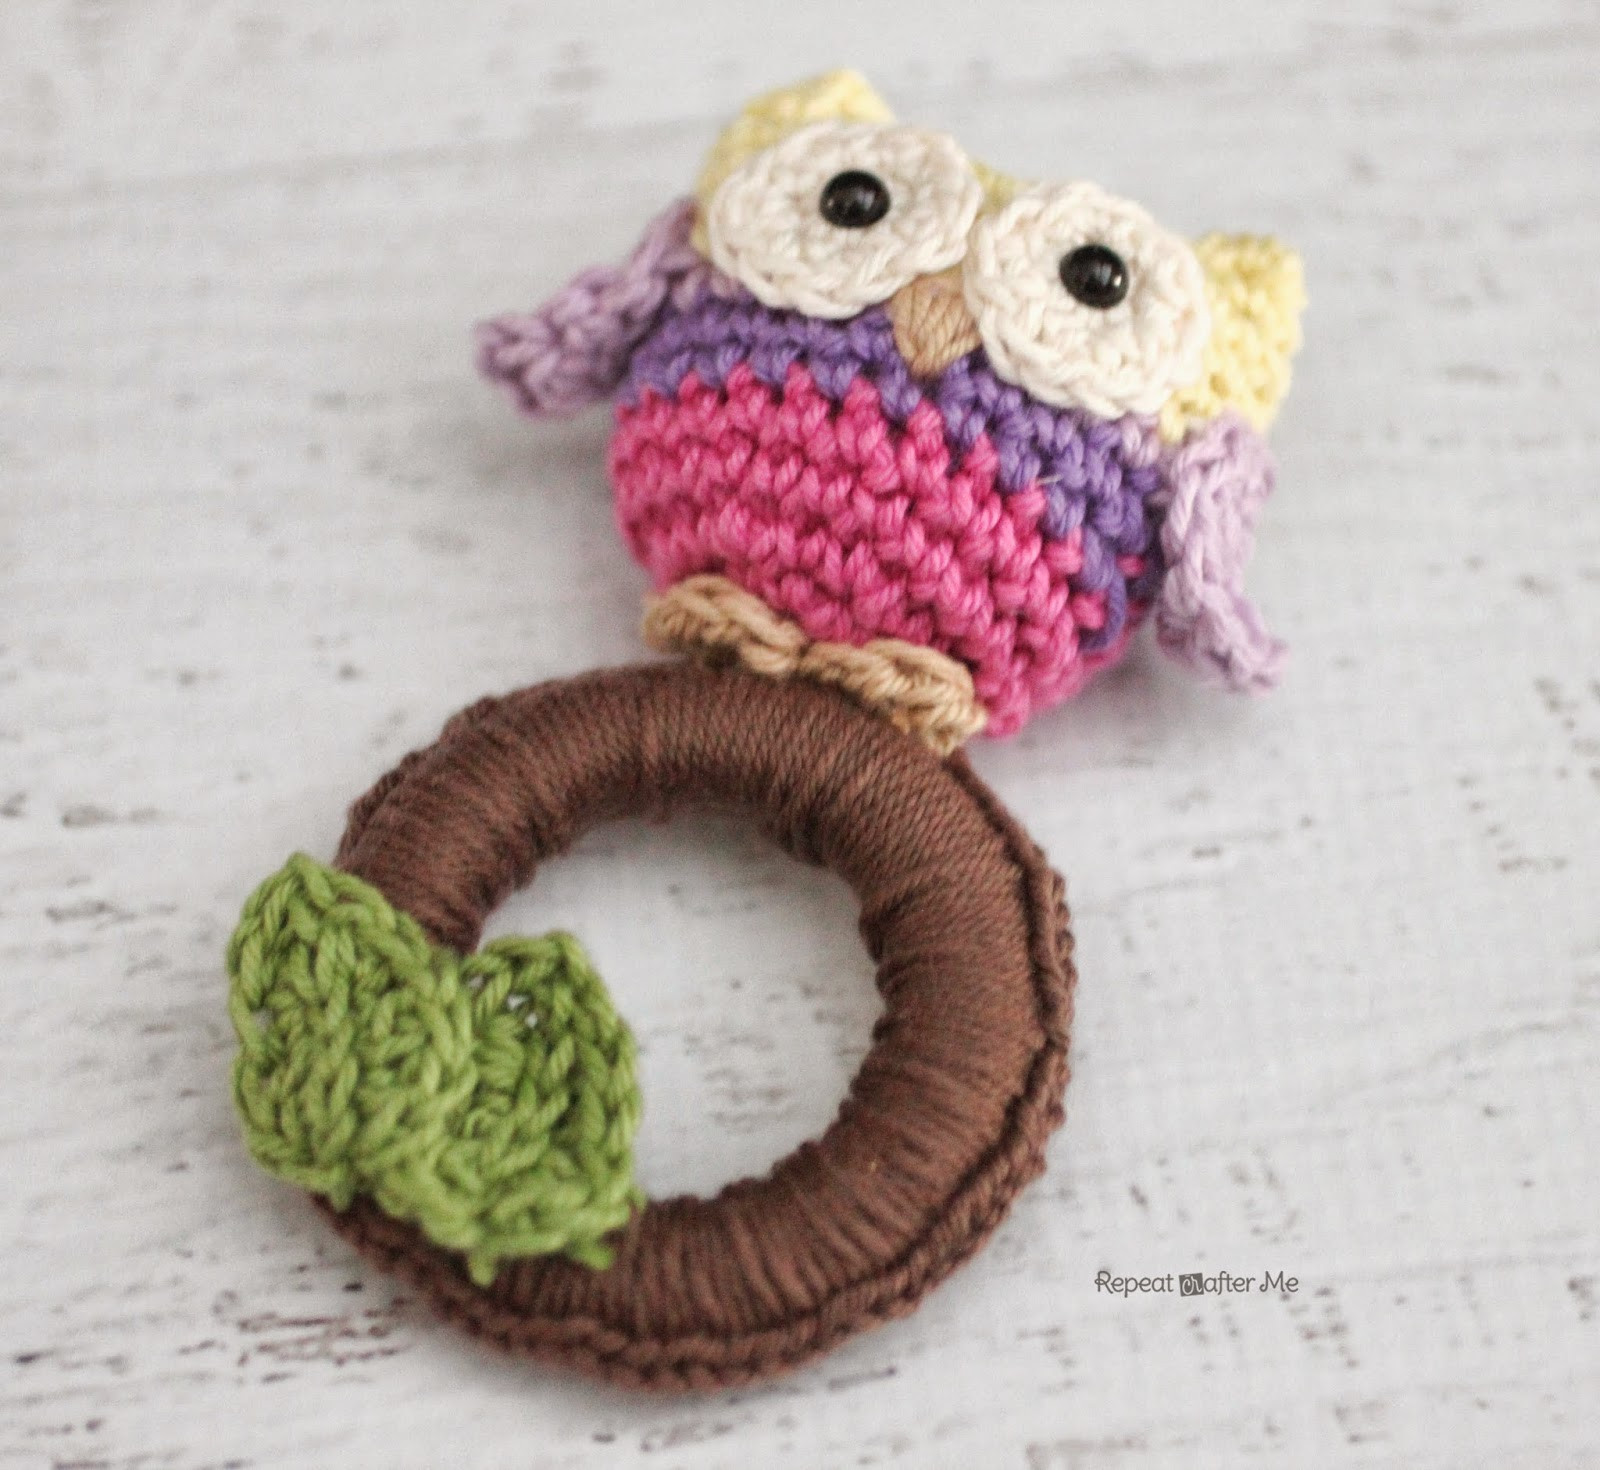 Crochet toy Patterns Inspirational Repeat Crafter Me Crochet Owl Ring Baby toy Of Perfect 45 Pics Crochet toy Patterns